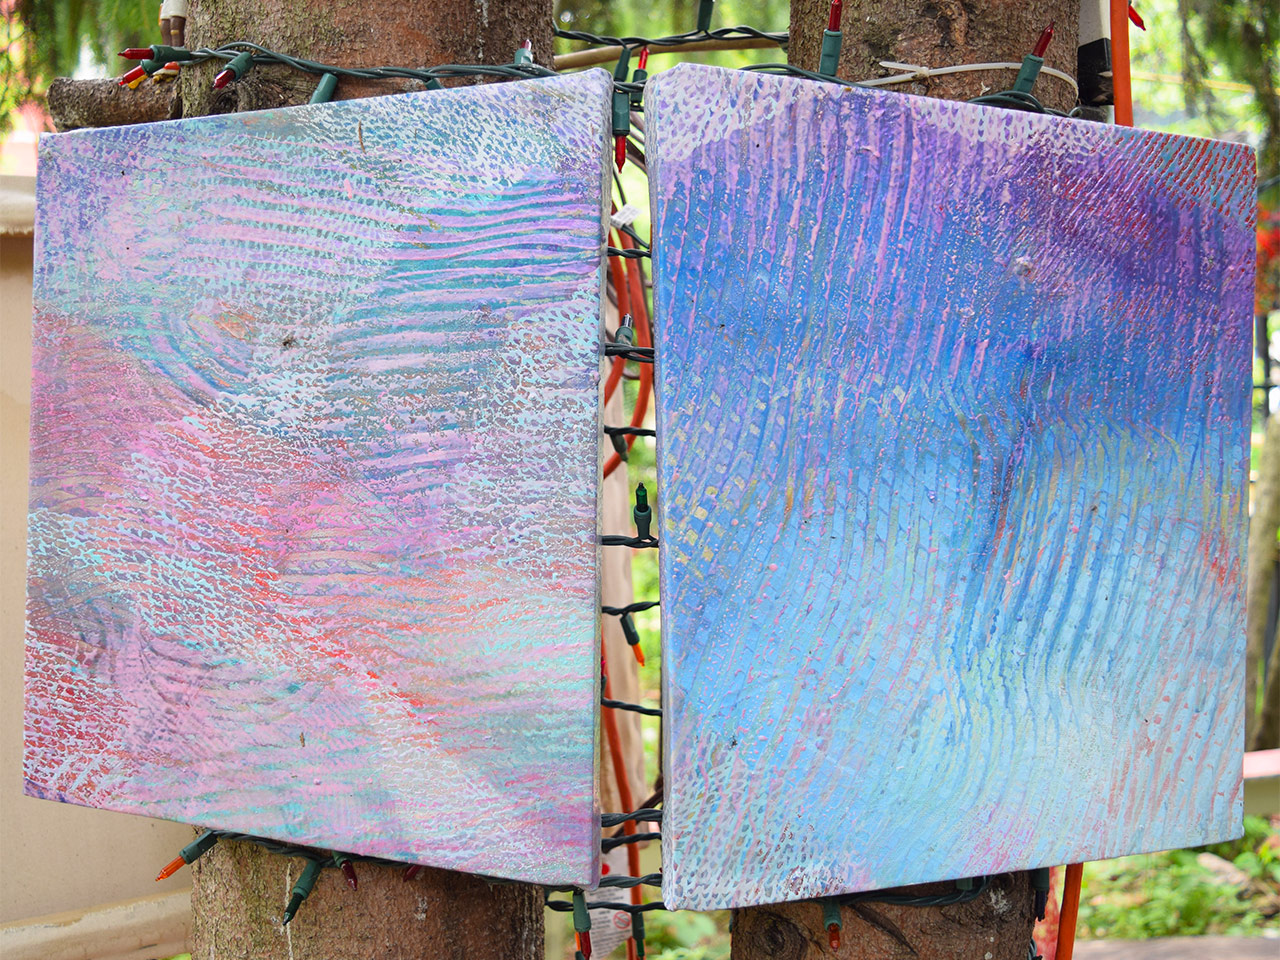 Two-panel painting by Theresa Dadezzio